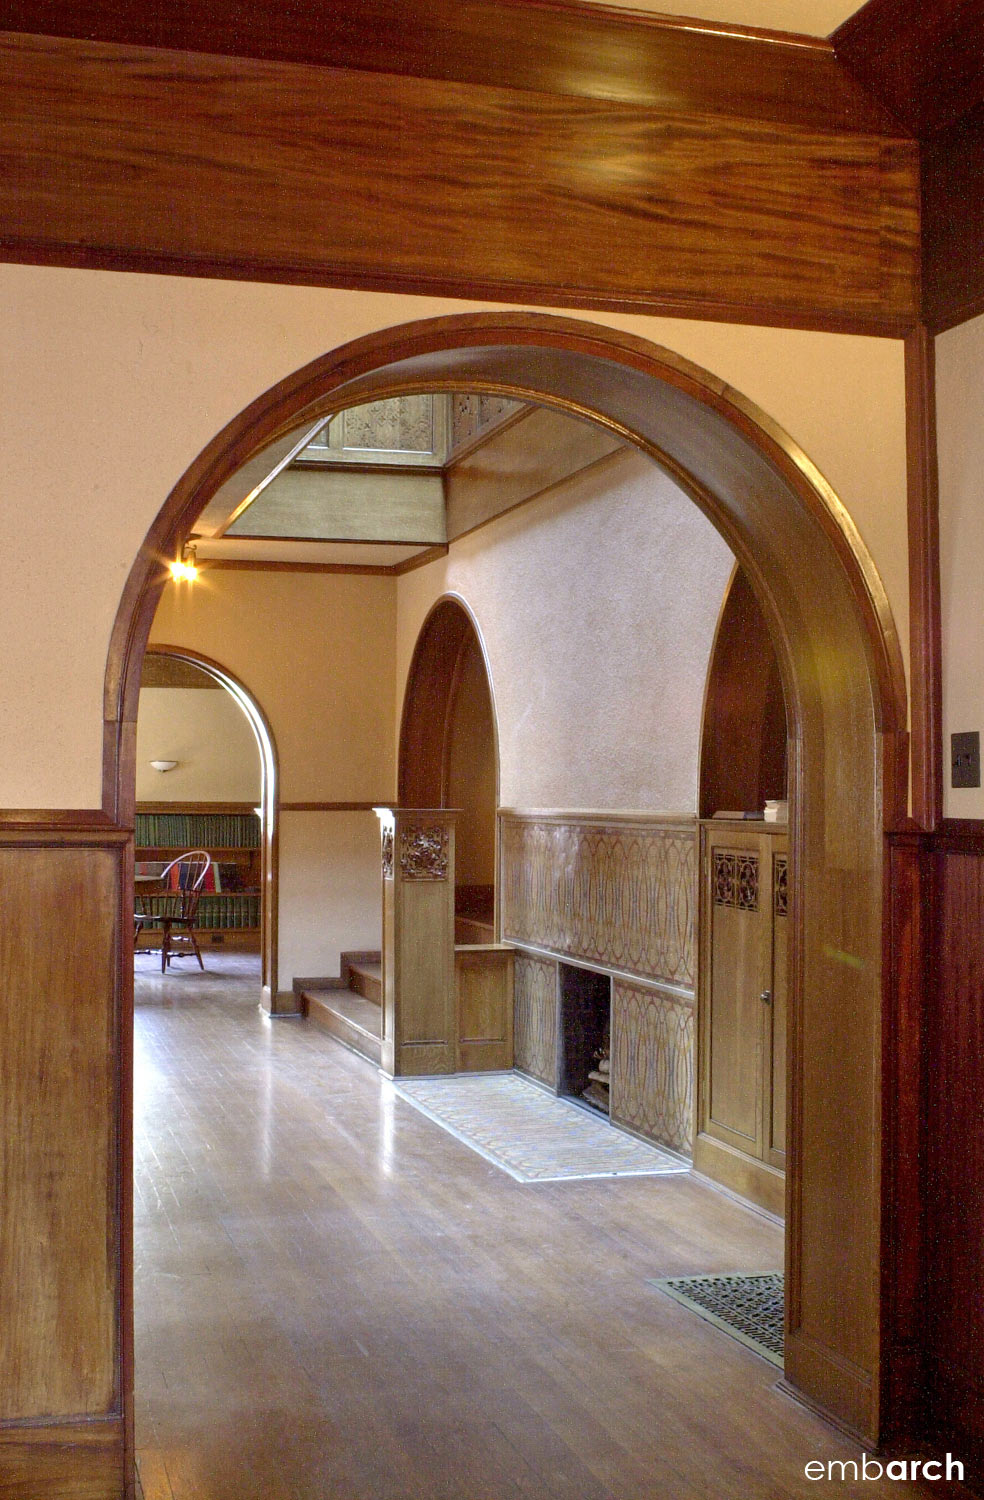 Charnley-Persky House - interior